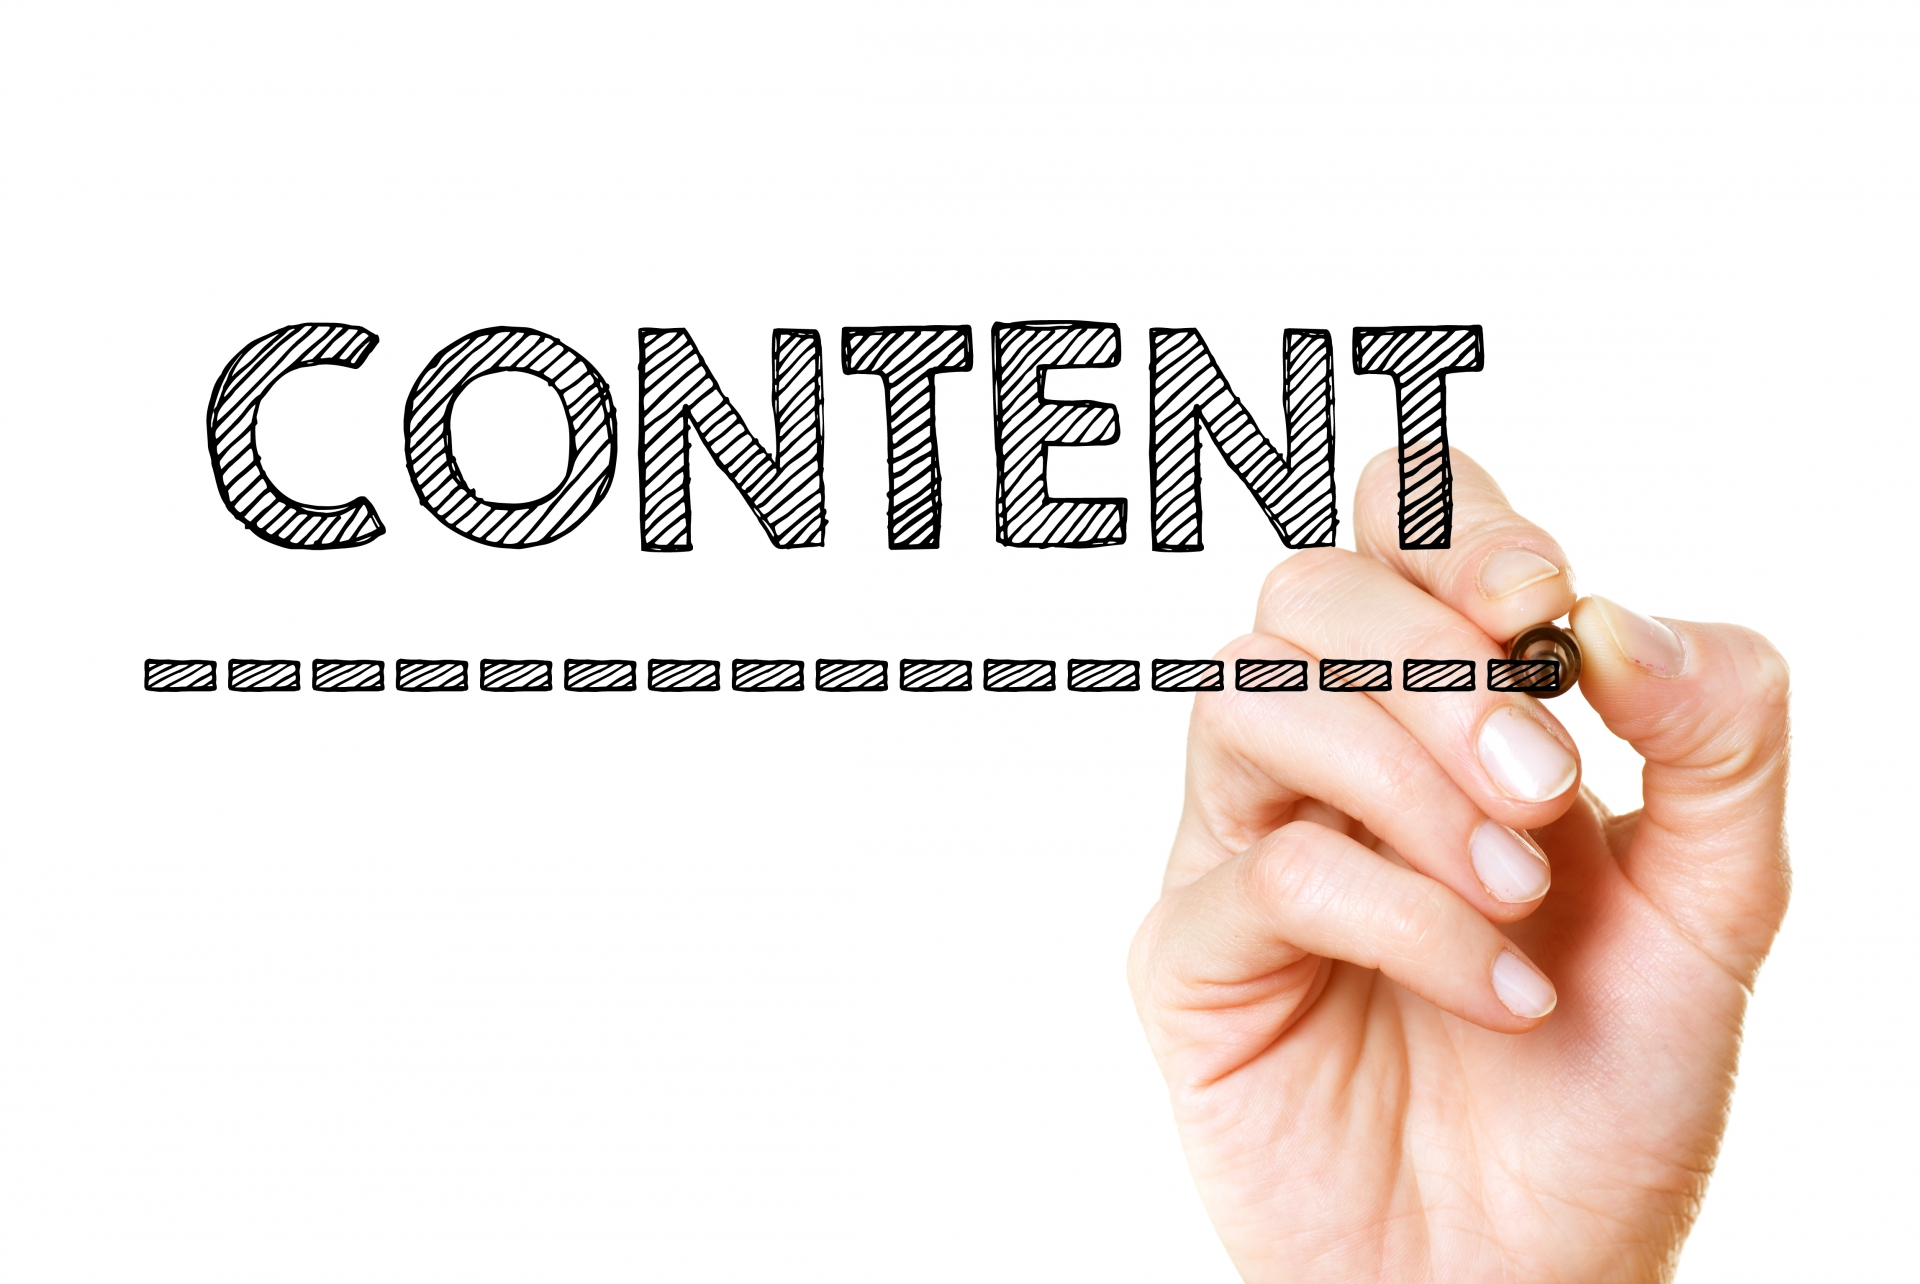 5-cau-hoi-can-co-khi-ban-lam-content-marketing-1